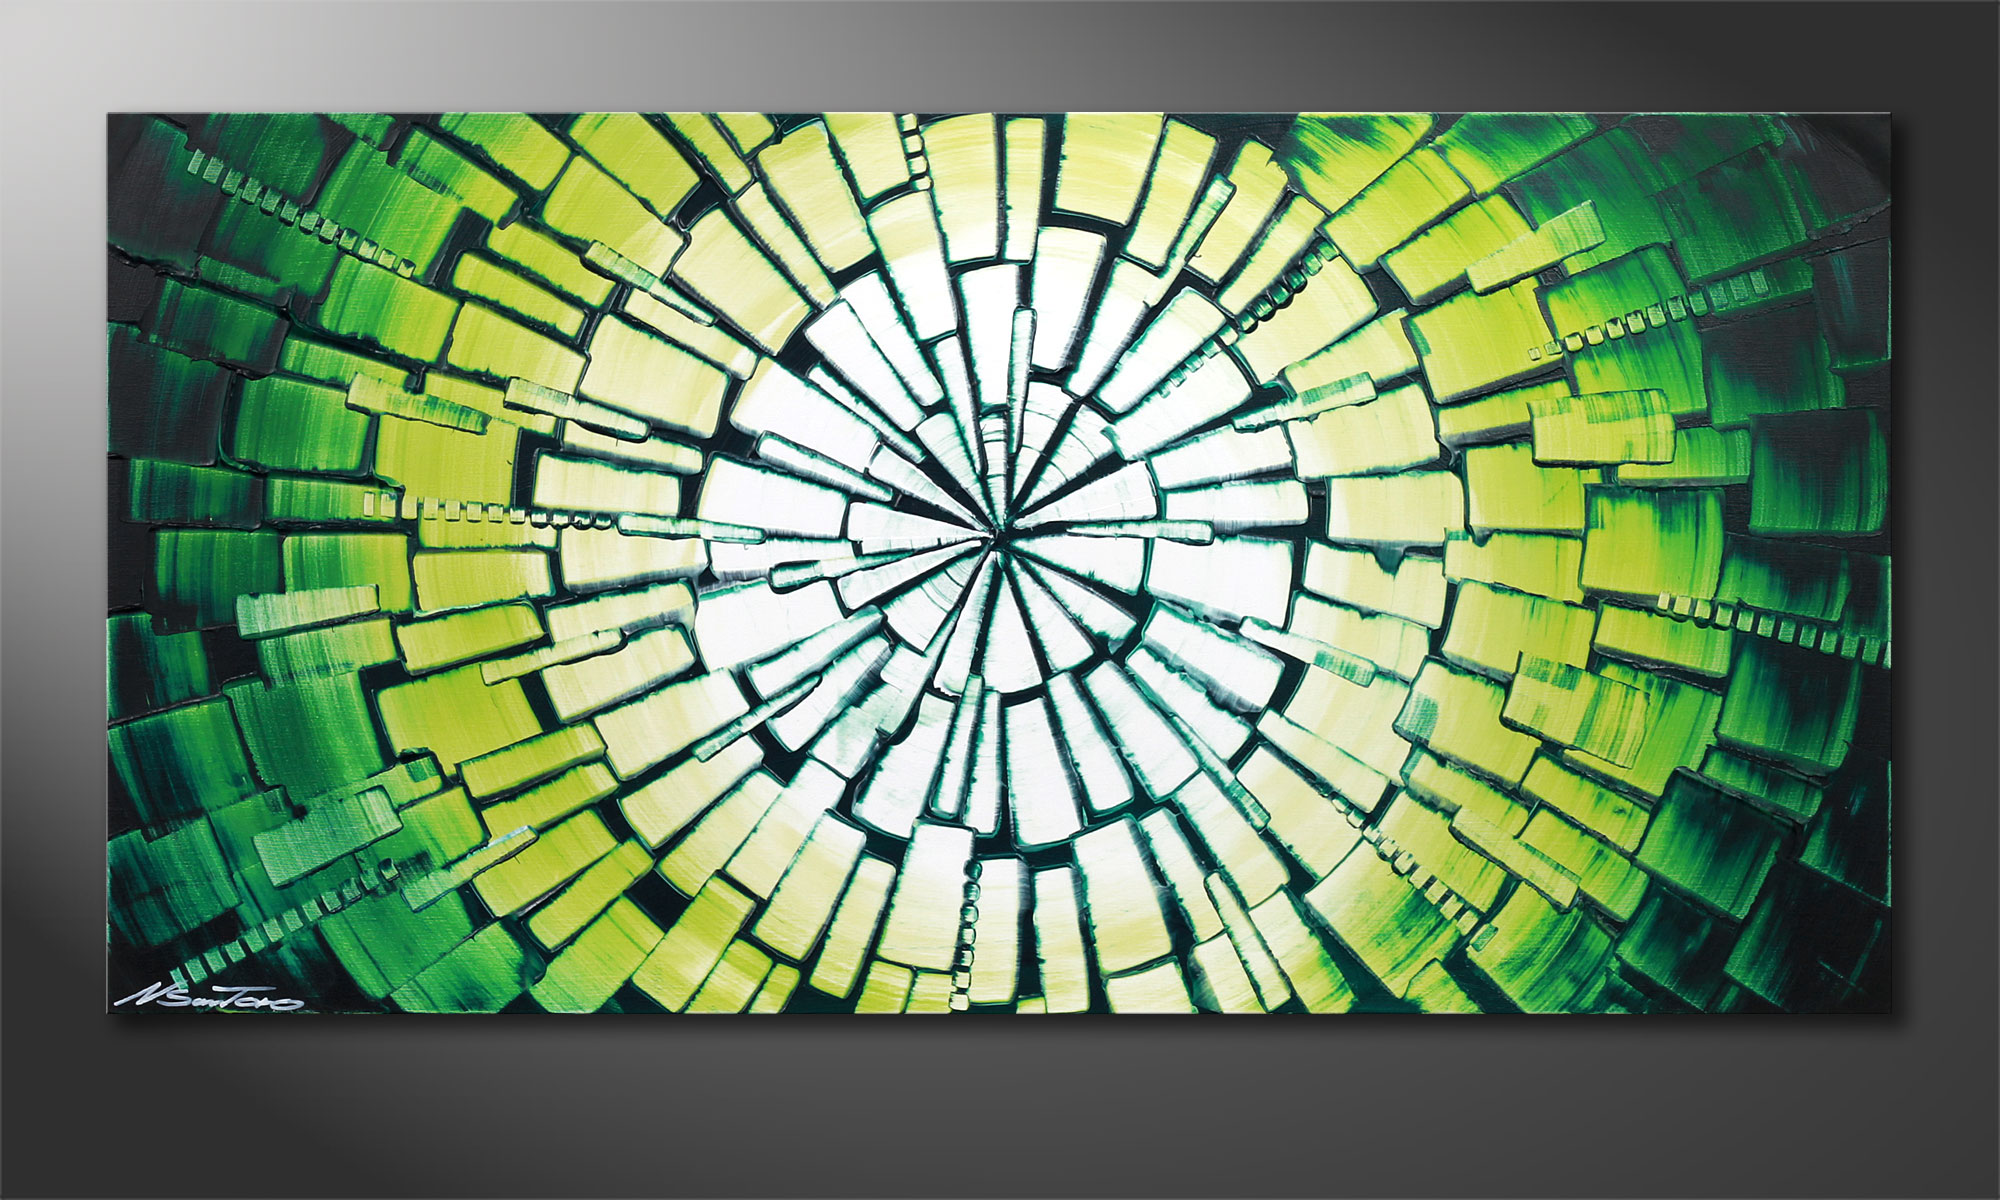 Das keilrahmenbild center of jungle 120x60cm wandbilder xxl - Wandbilder keilrahmenbilder ...